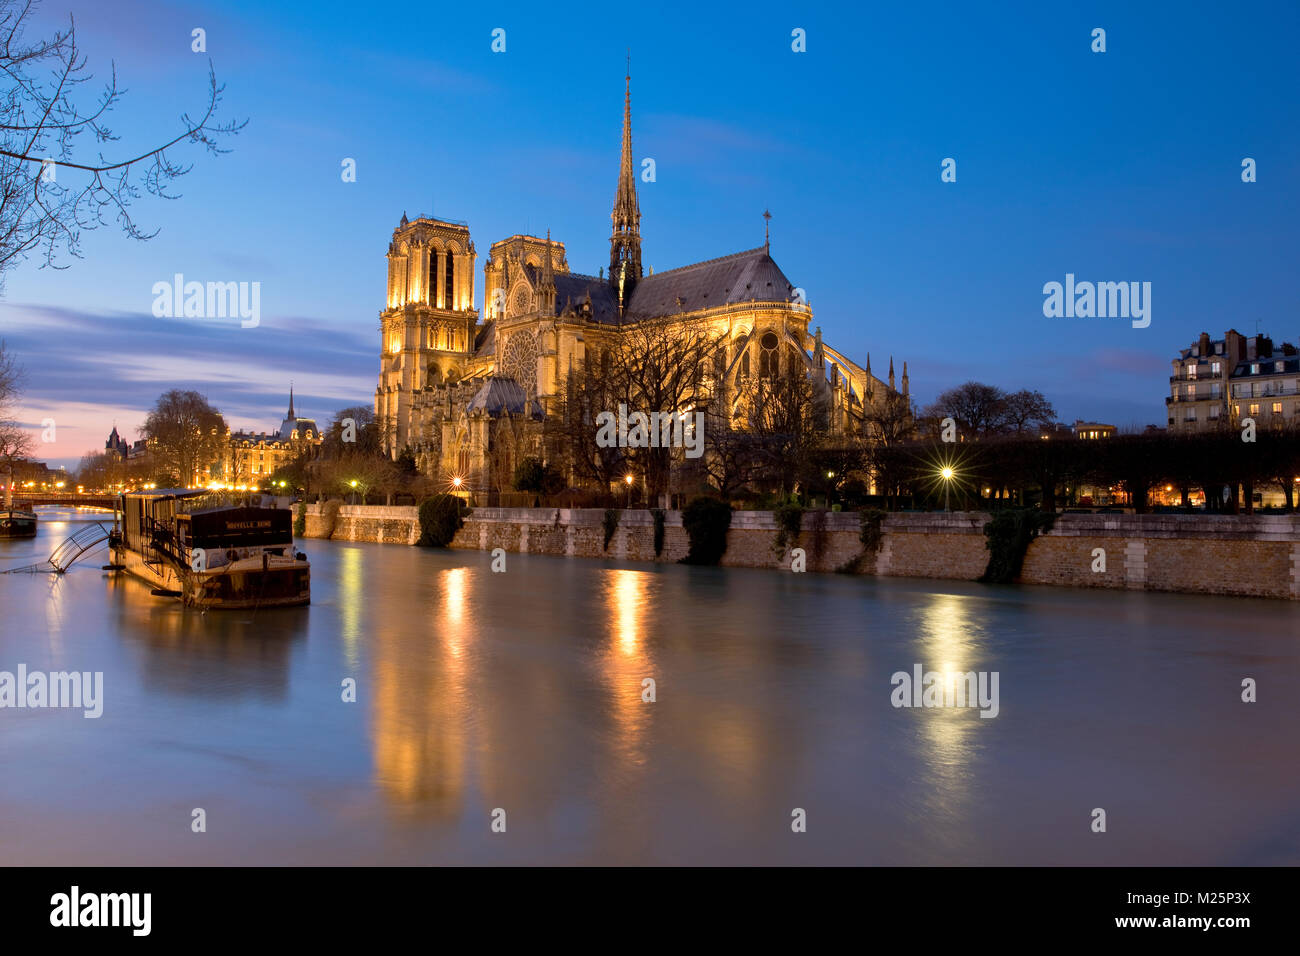 Flooding of the Seine River near Notre-Dame de Paris, Île de la Cité, France during the winter 2018 - Stock Image